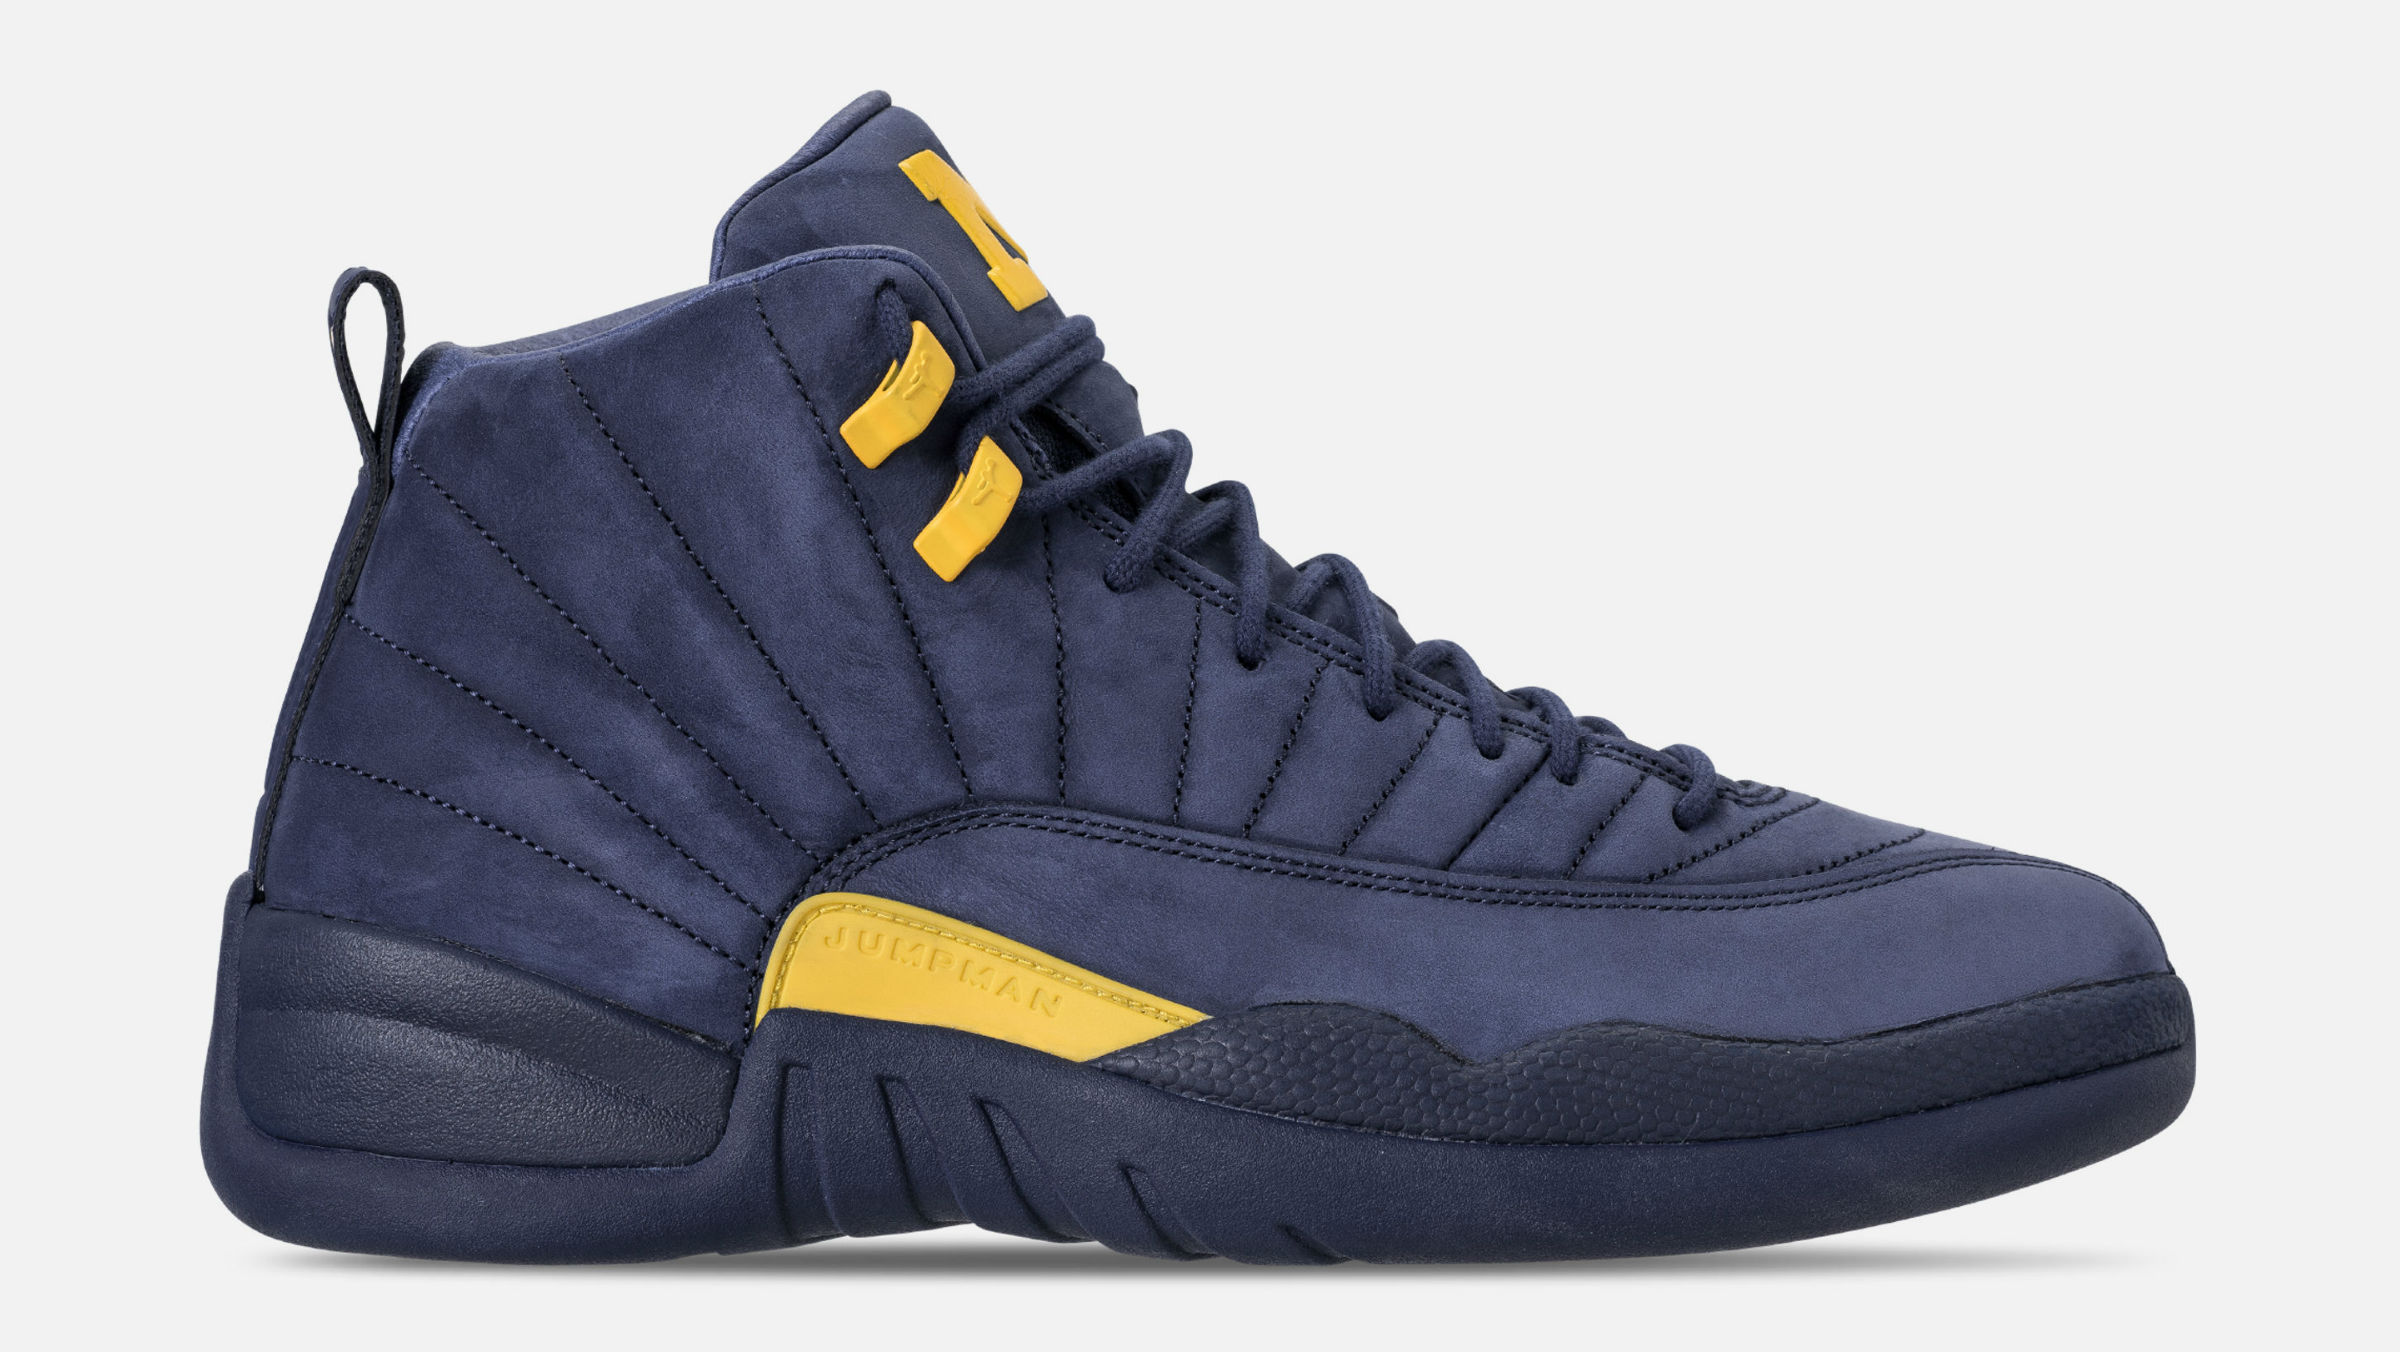 newest db41b 0dbf4  Michigan  Air Jordan 12 College Navy Amarillo BQ3180-407 Release Date    Sole Collector